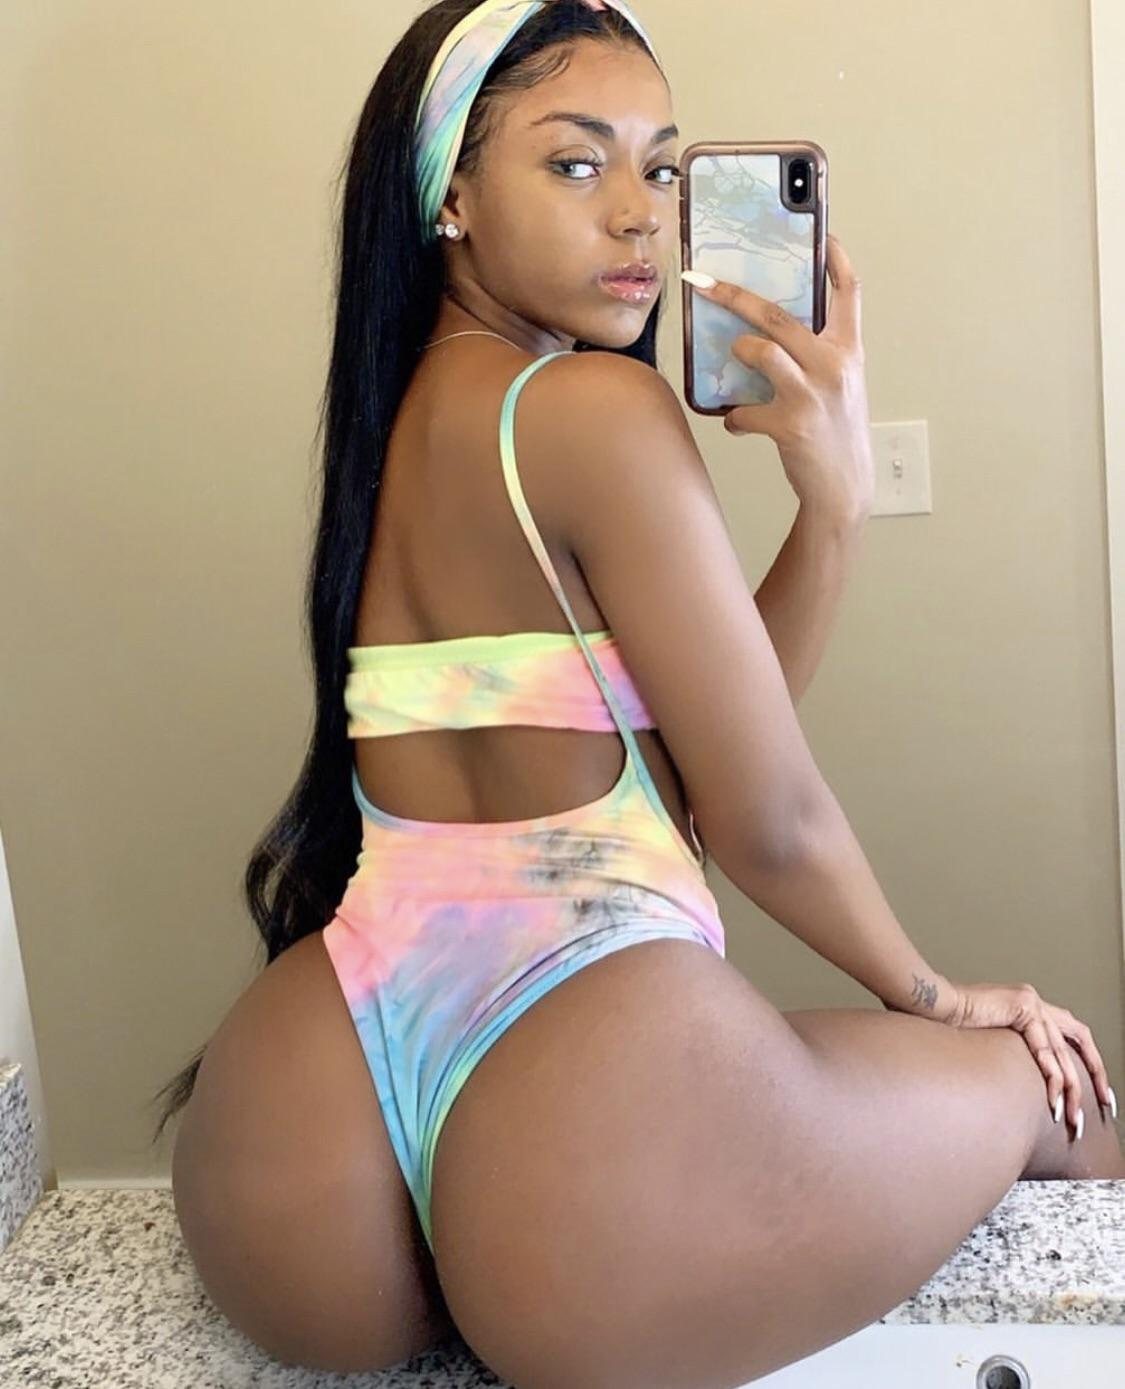 NEW PORN: Darcii Moore Nude Its.Darcii Onlyfans Leaked!